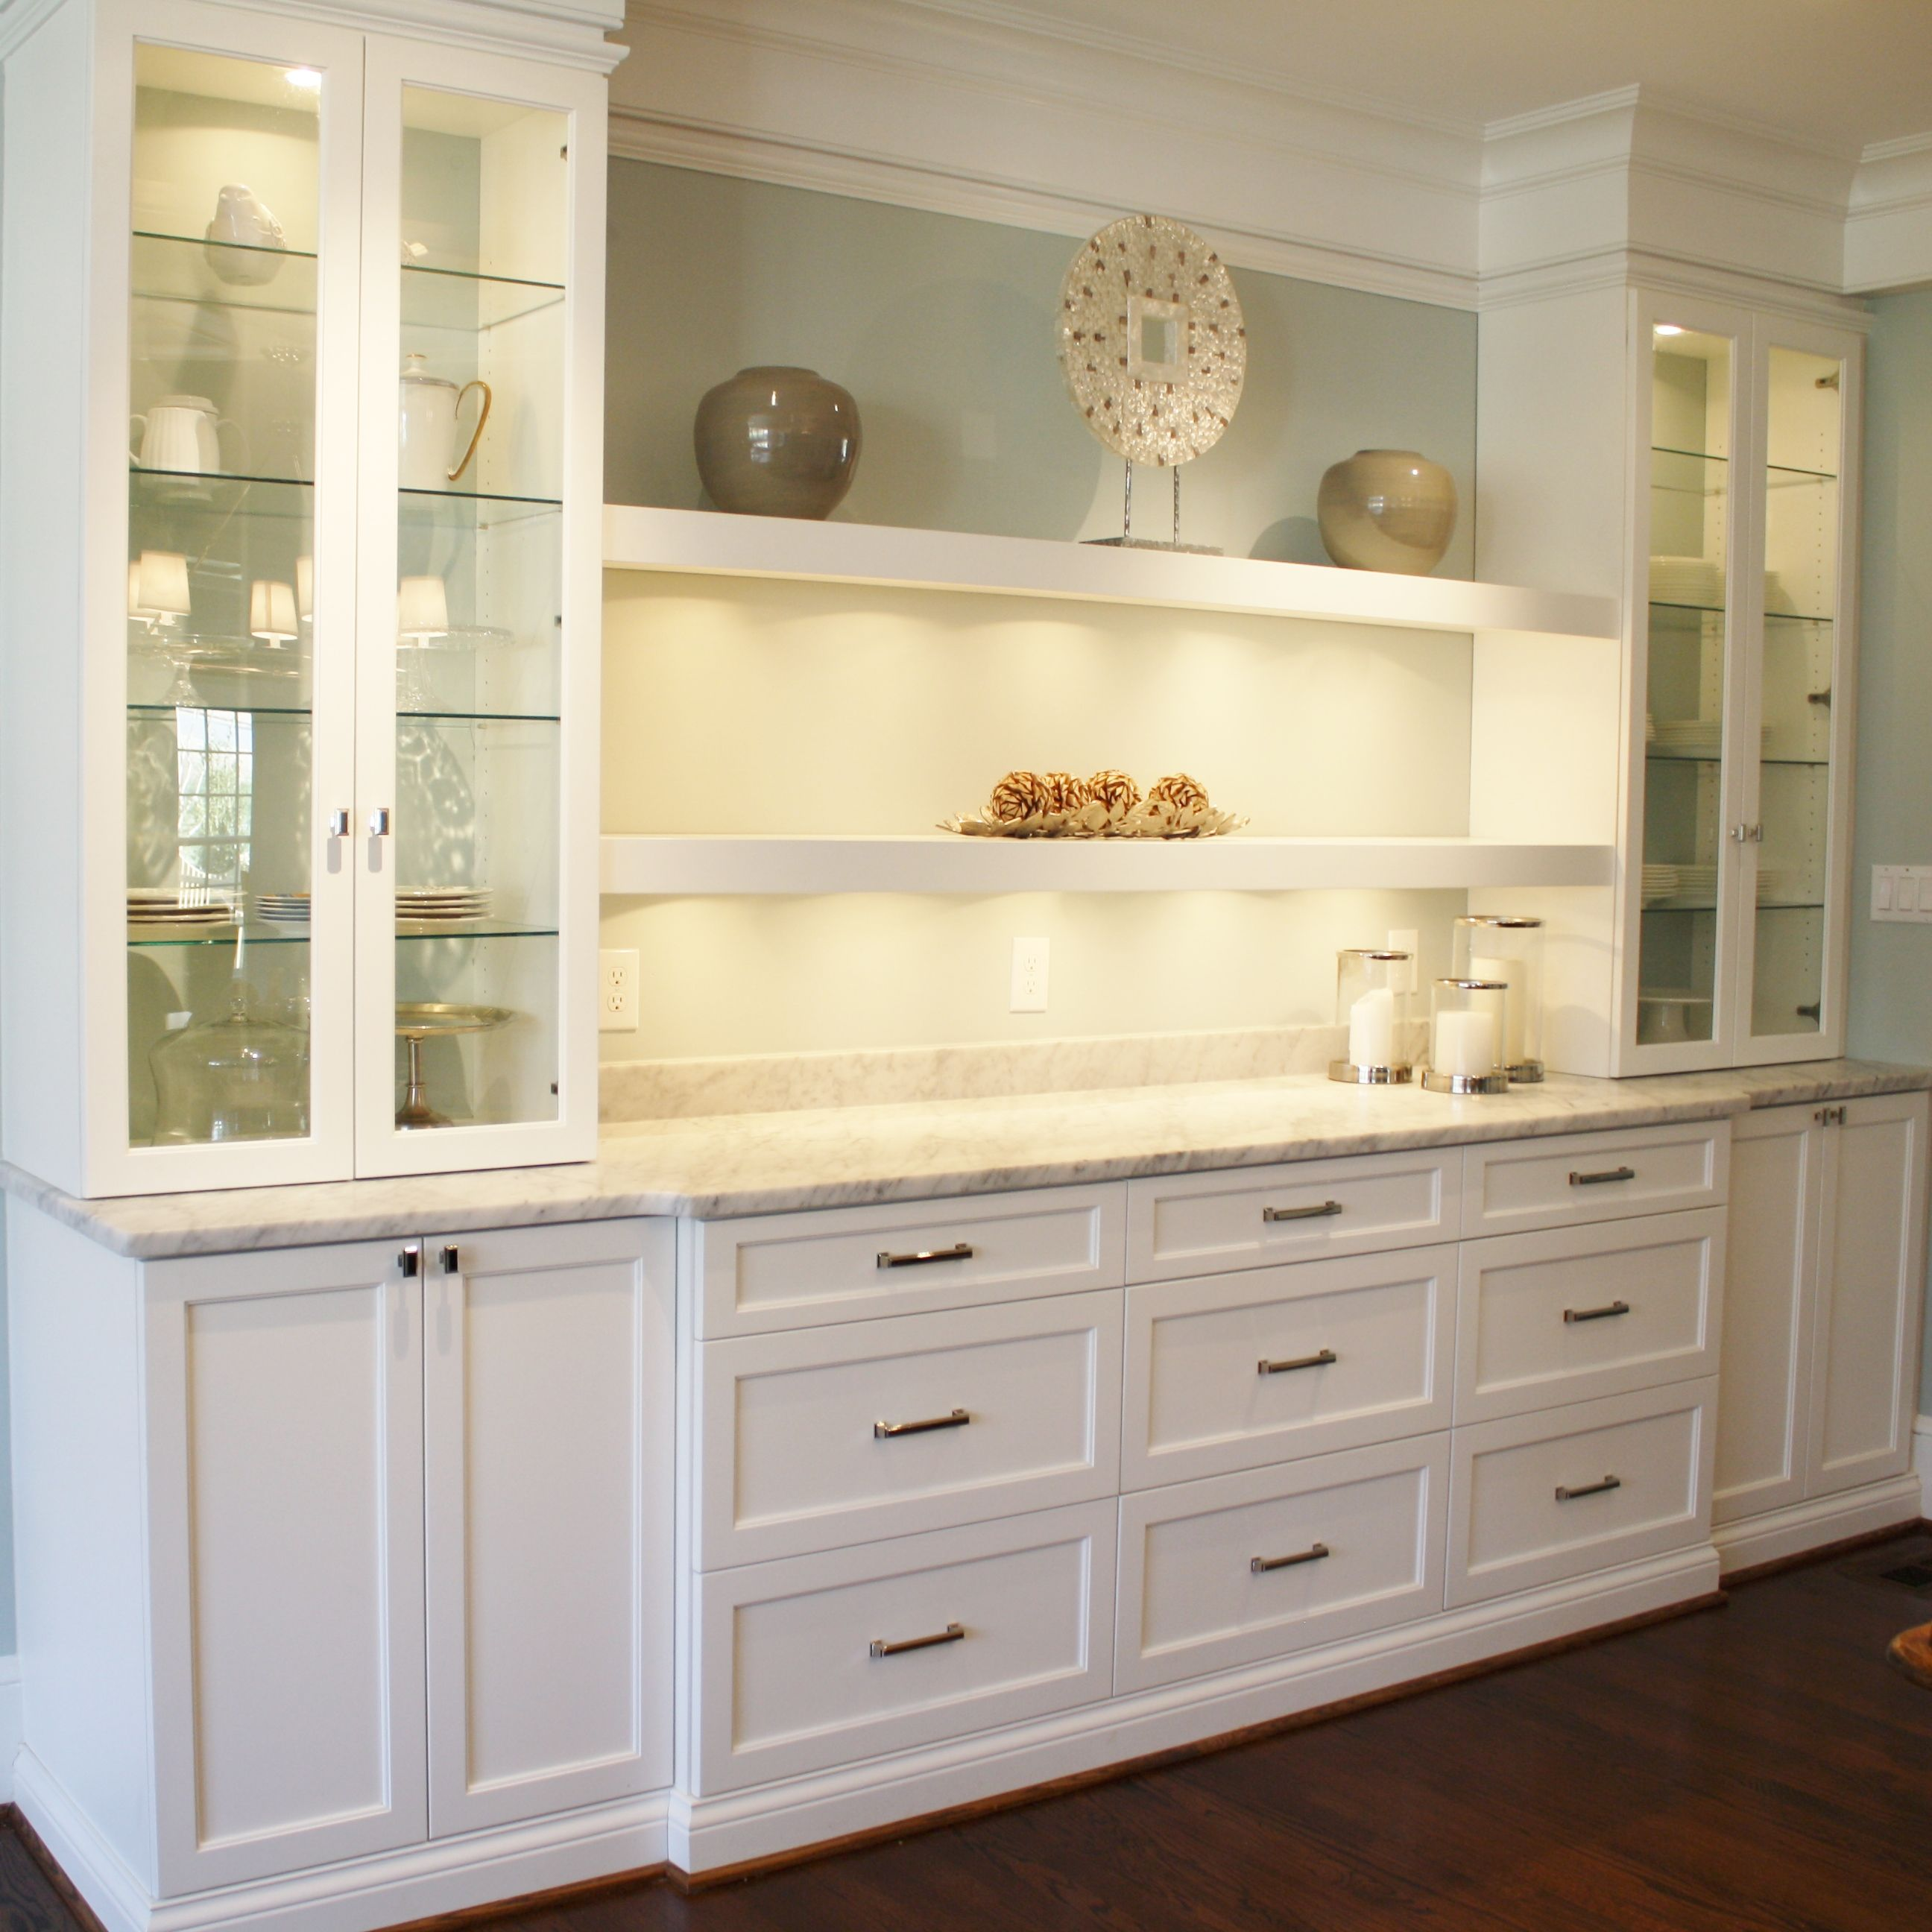 Kitchen Cabinet Buffet Ideas #kitchen #breakfast #bar #buffet Gorgeous Custom Breakfast